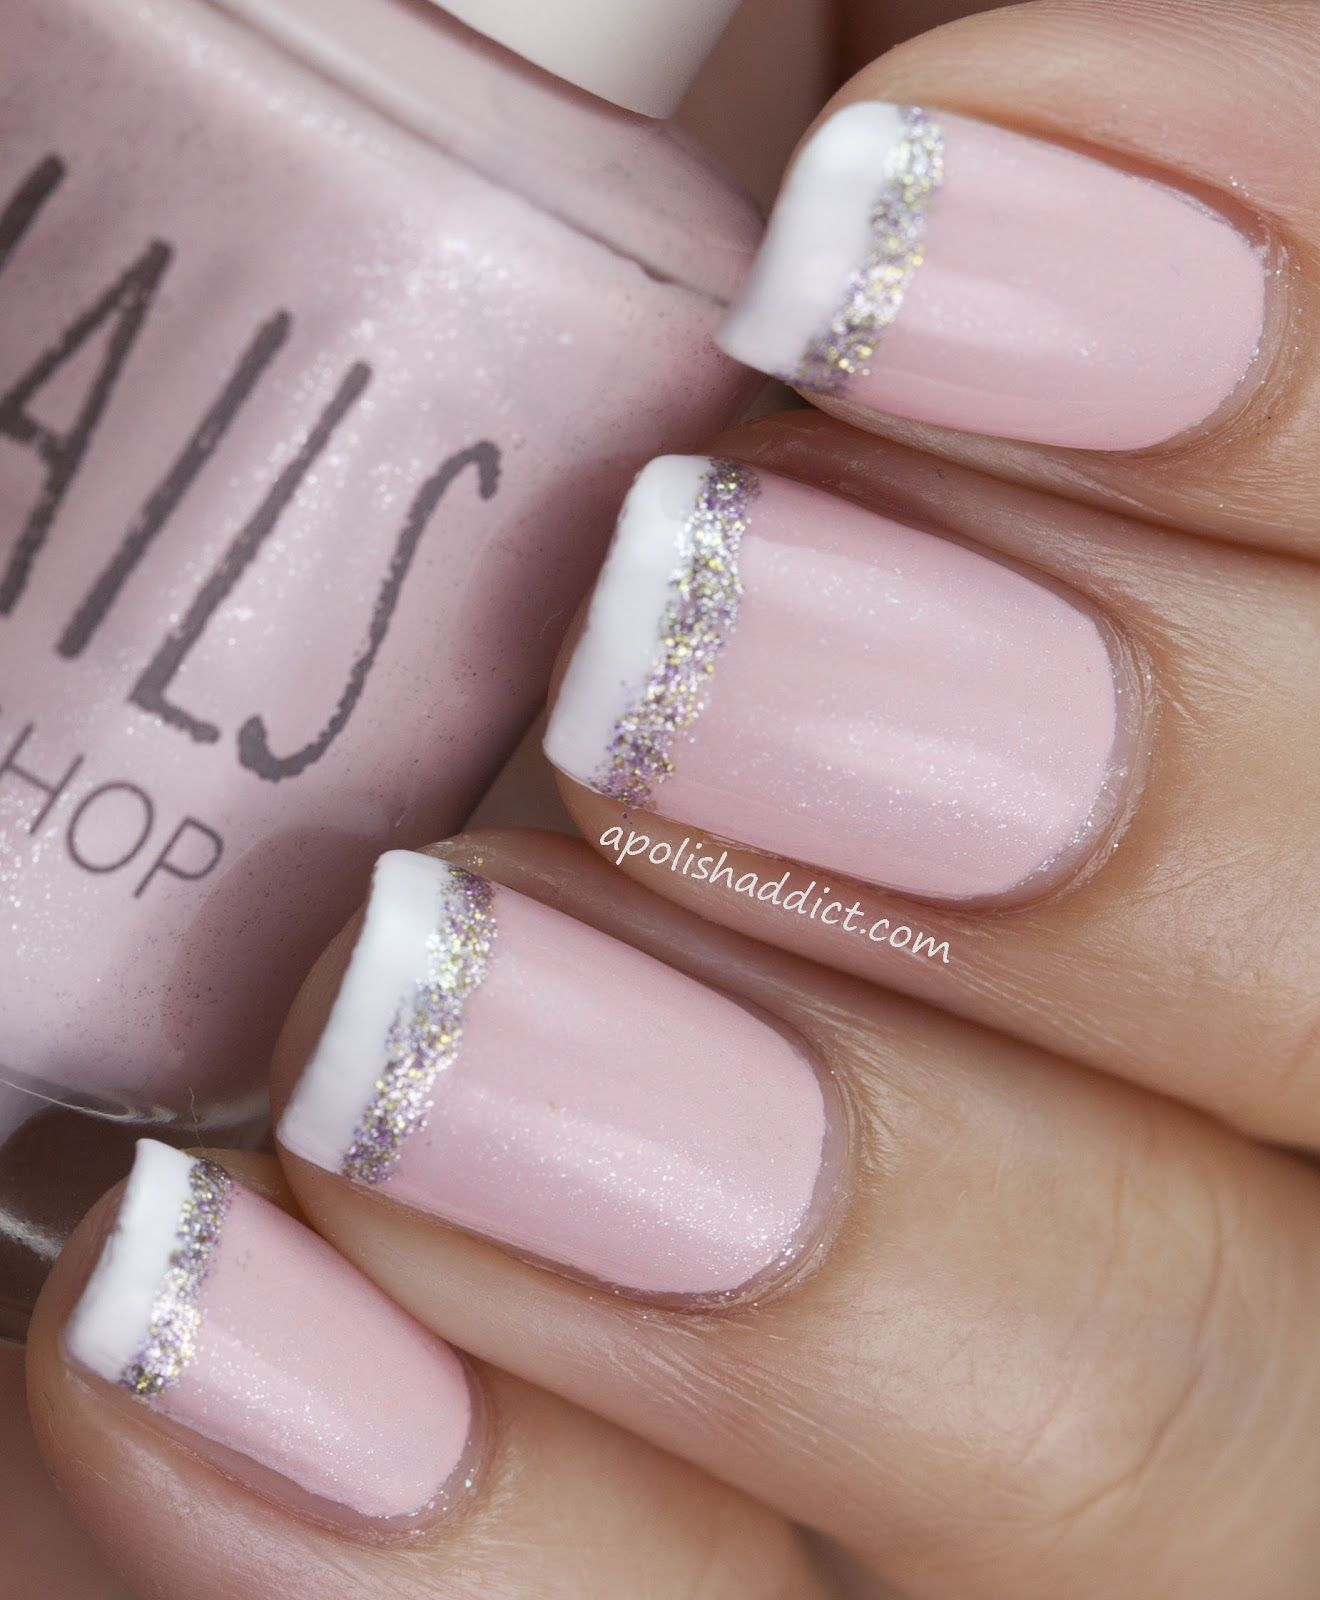 French with glitter- My Absolute Favorite | NAILS | Pinterest ...